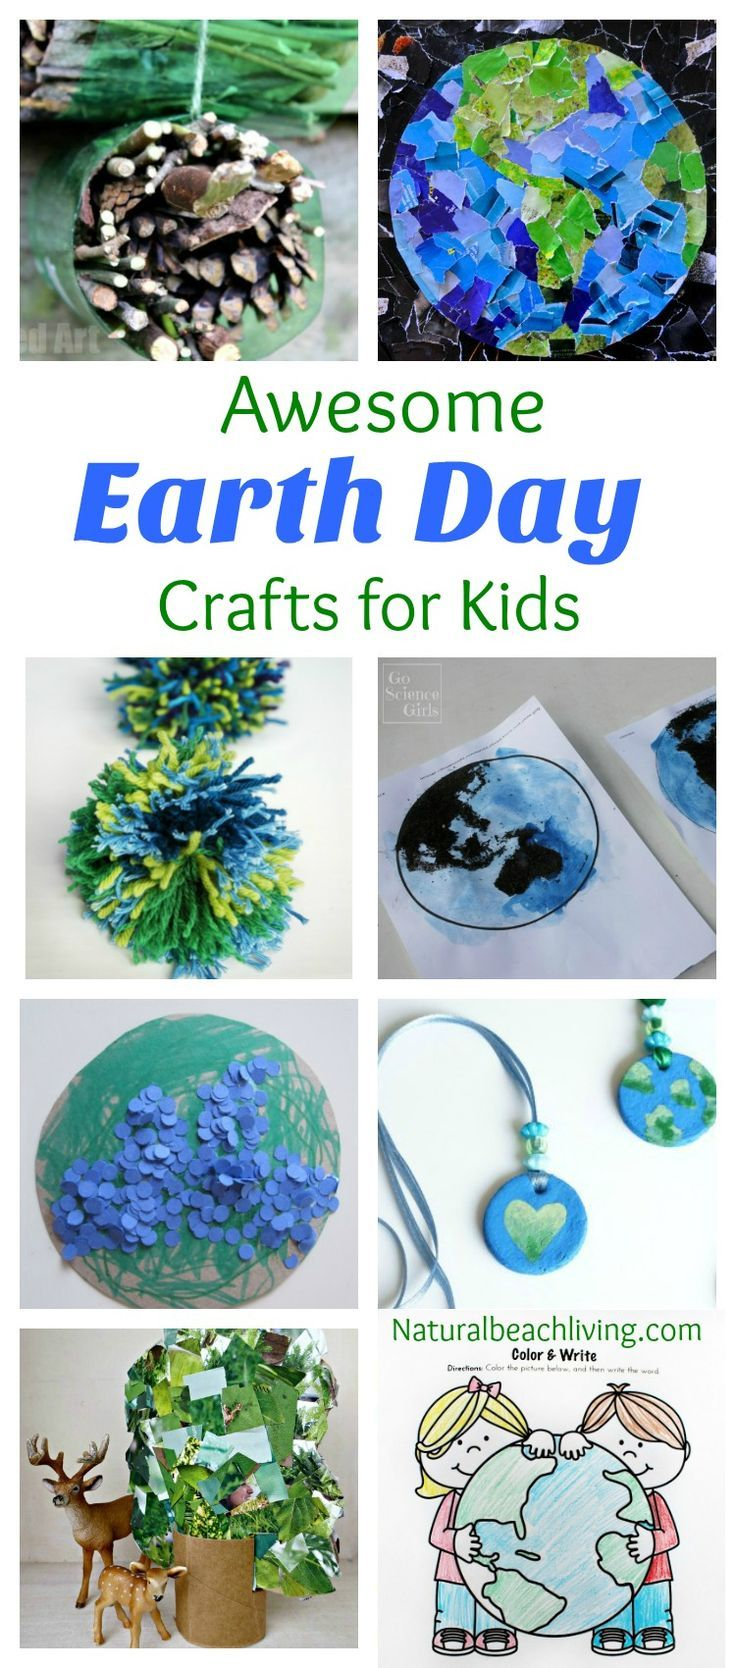 Summer crafts coloring pages - 30 Creative Earth Day Crafts For Kids